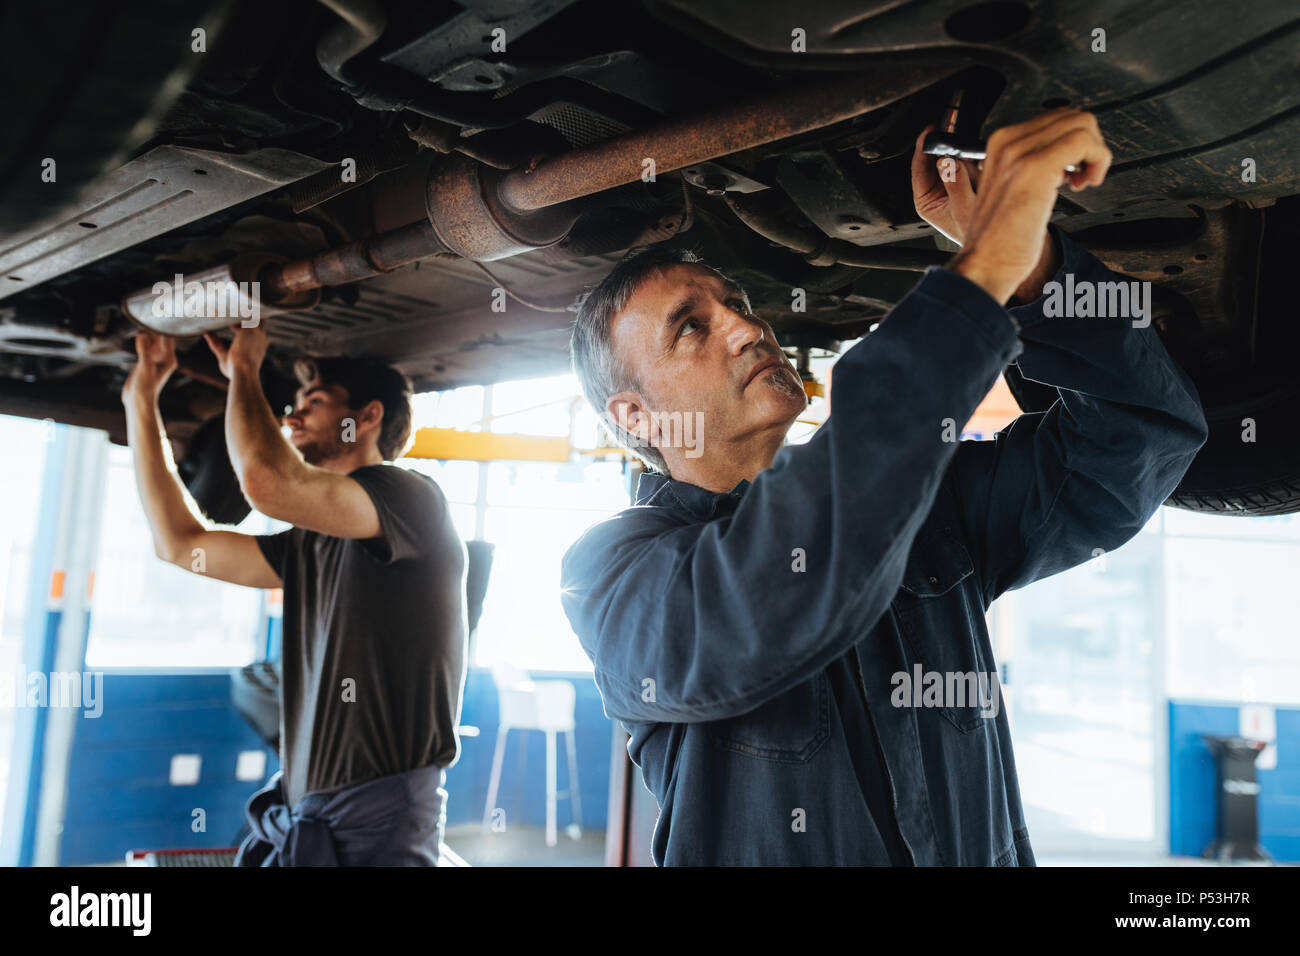 Two mechanics working under a car. Men in garage repairing exhaust system of a lifted automobile. - Stock Image